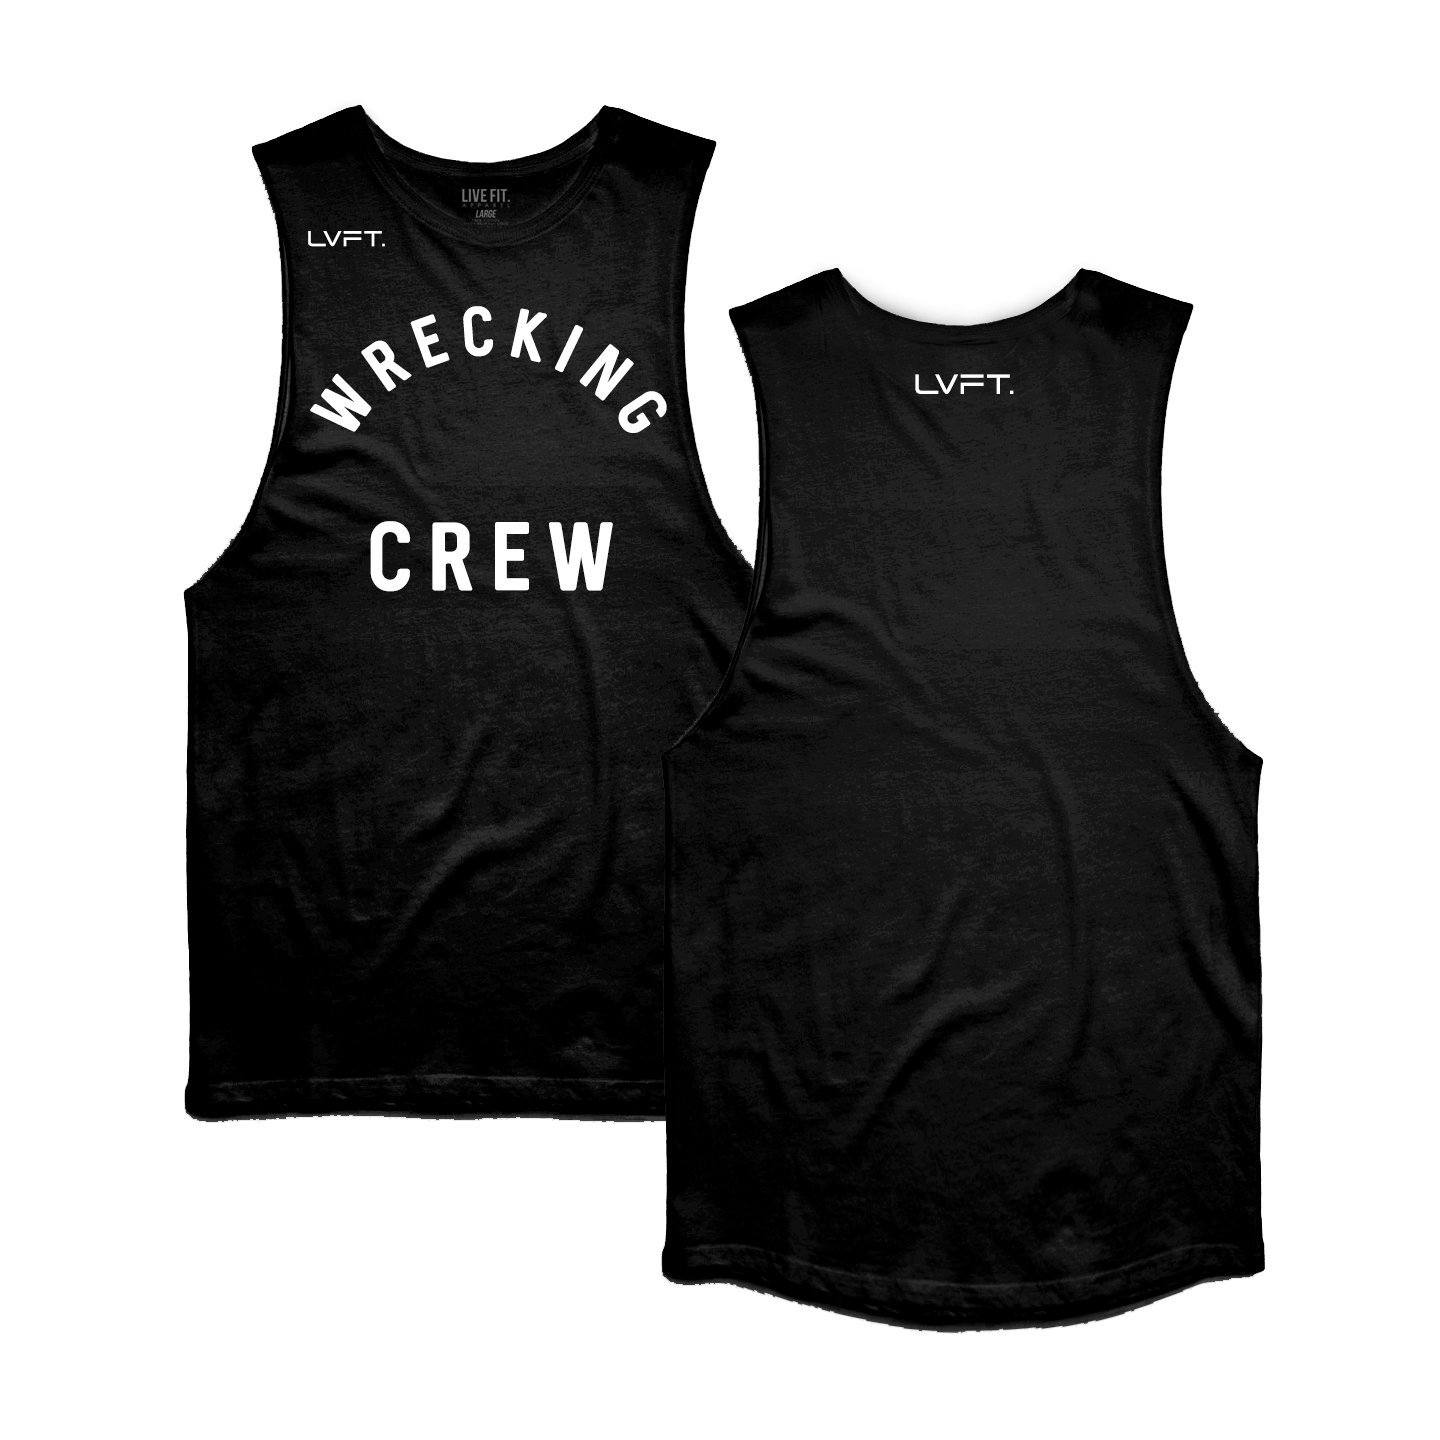 Live Fit Wrecking Crew Tank - Black